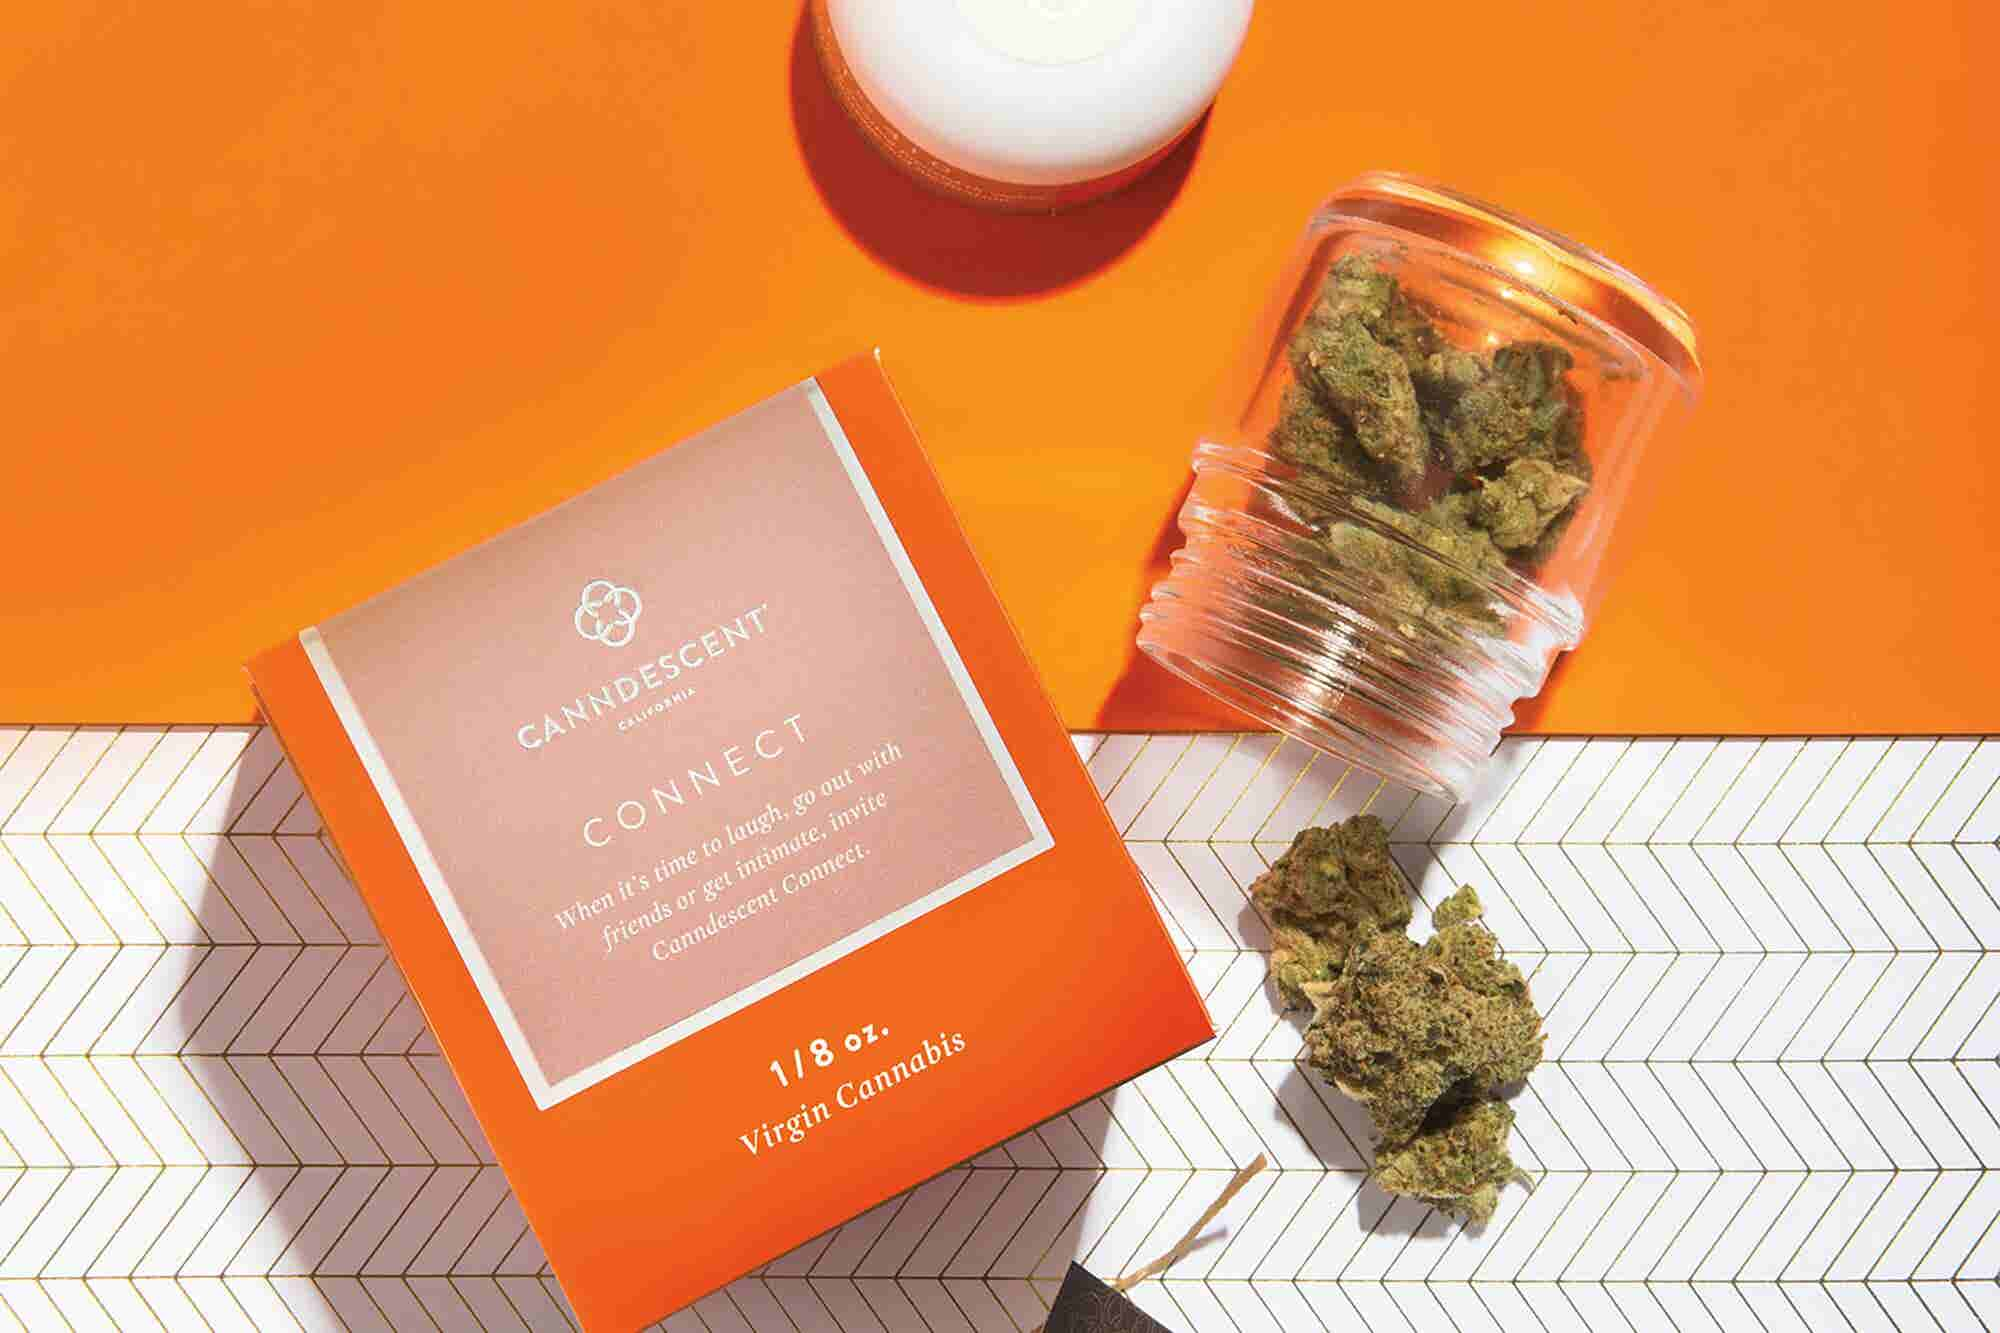 How This Brand Is Making Cannabis Feel Like a Luxury